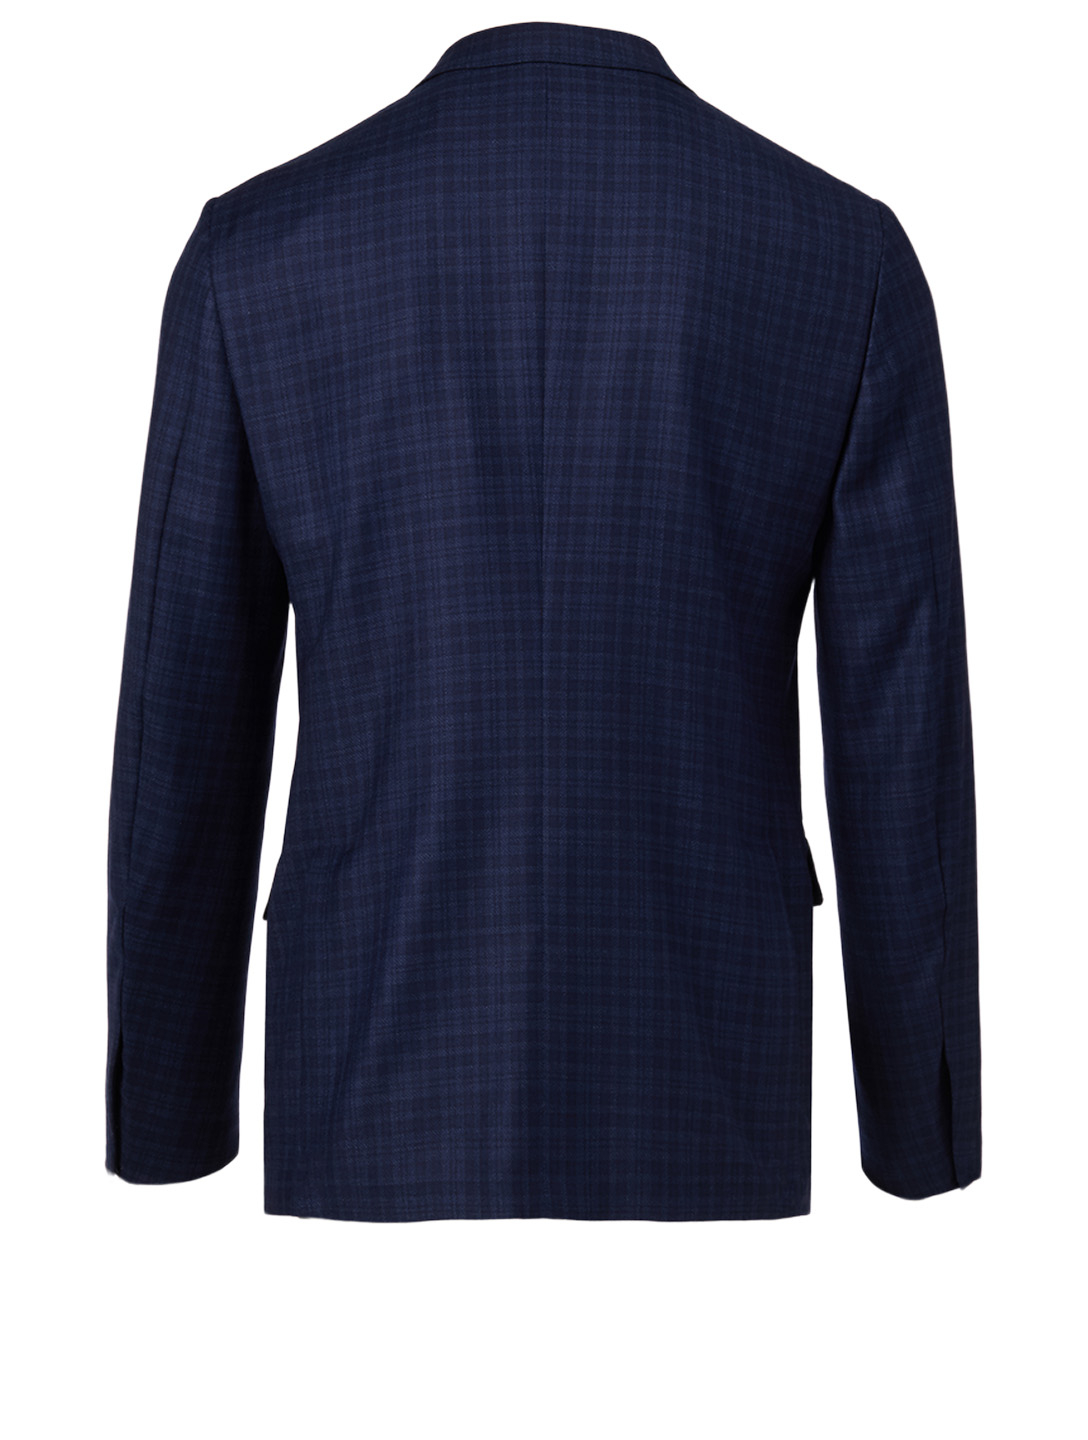 ERMENEGILDO ZEGNA Wool Jacket In Check Men's Blue